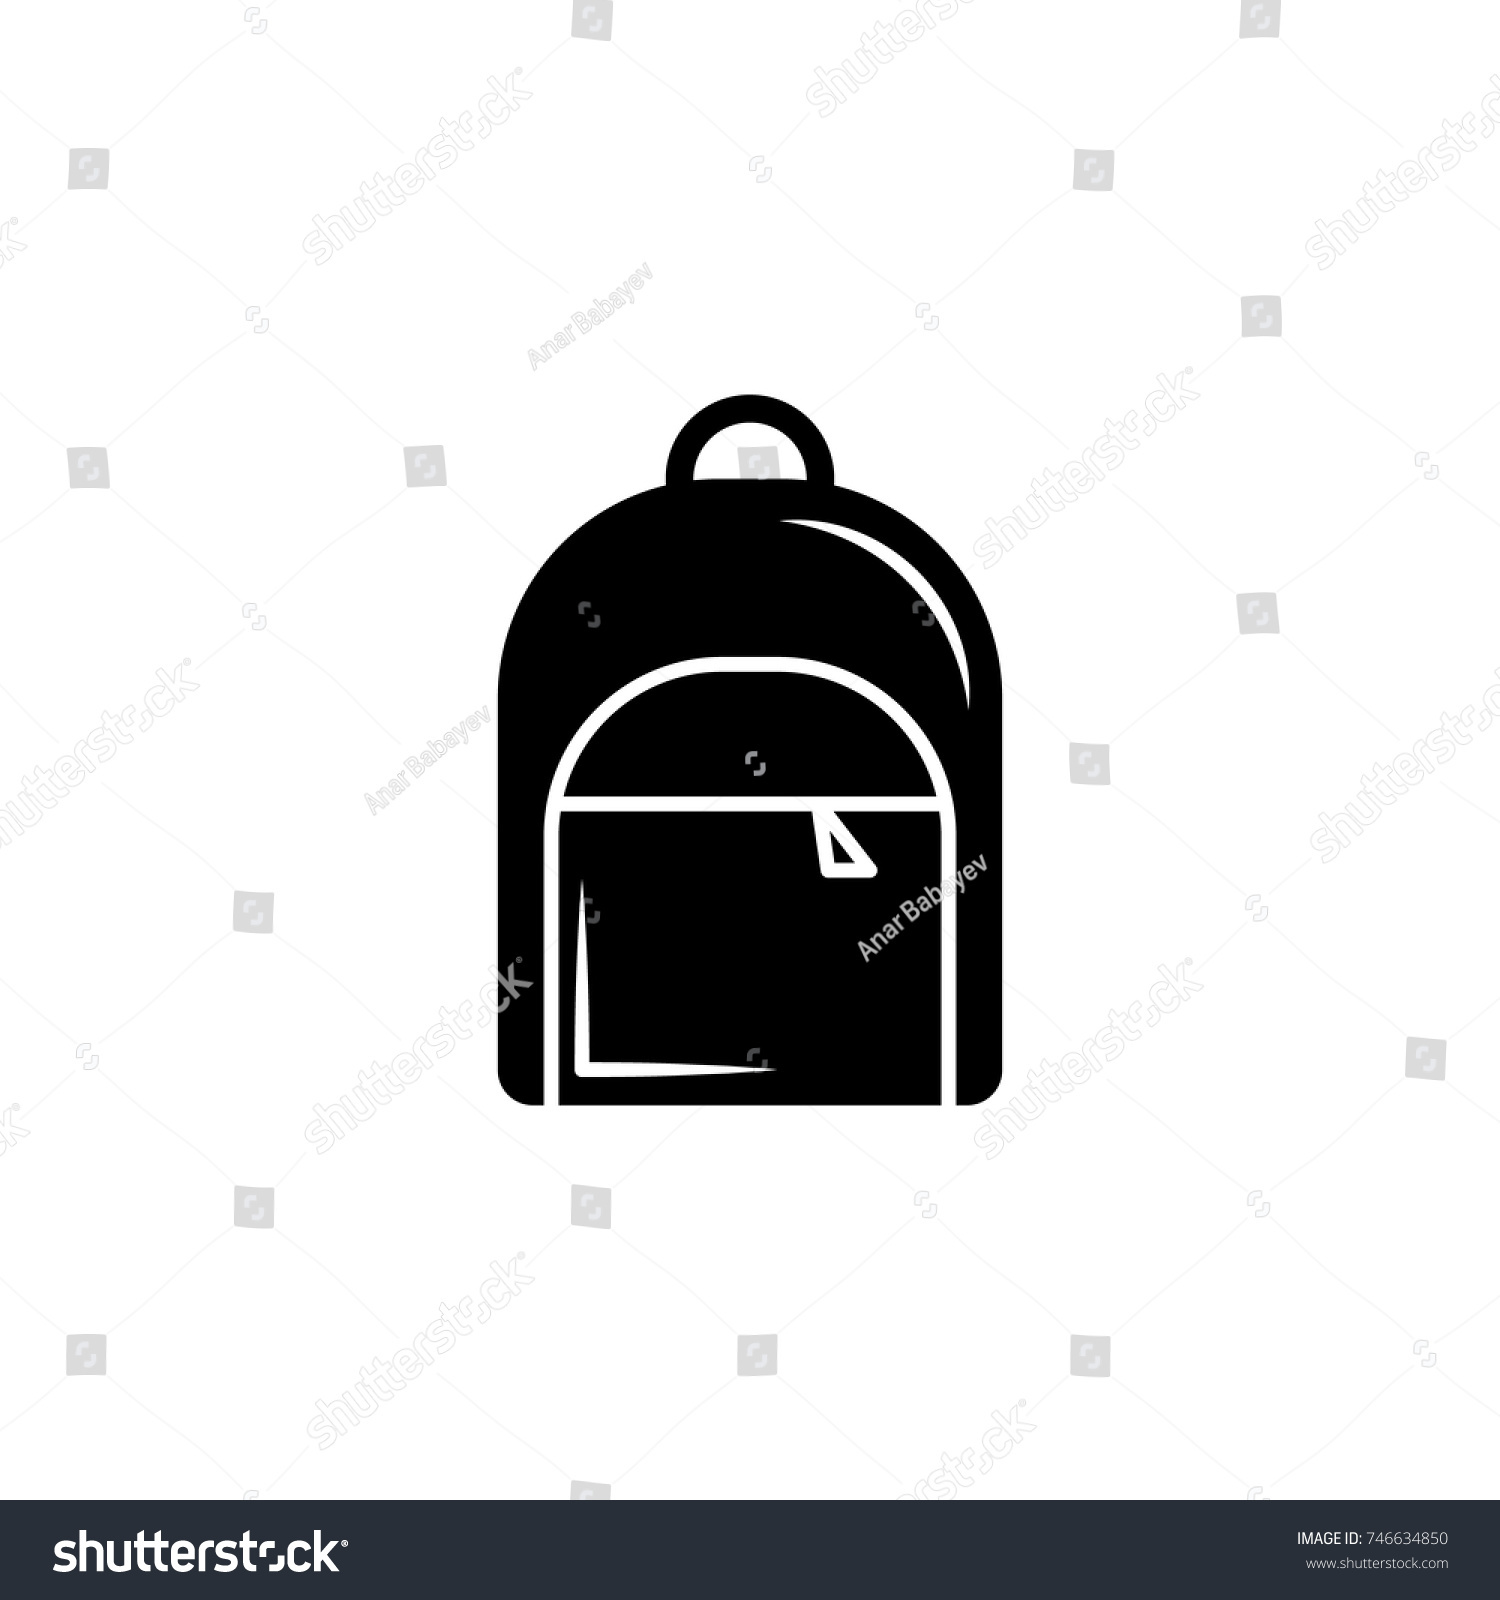 Backpack icon vector graduation icon education stock vector backpack icon vector graduation icon education academic degree premium quality graphic design buycottarizona